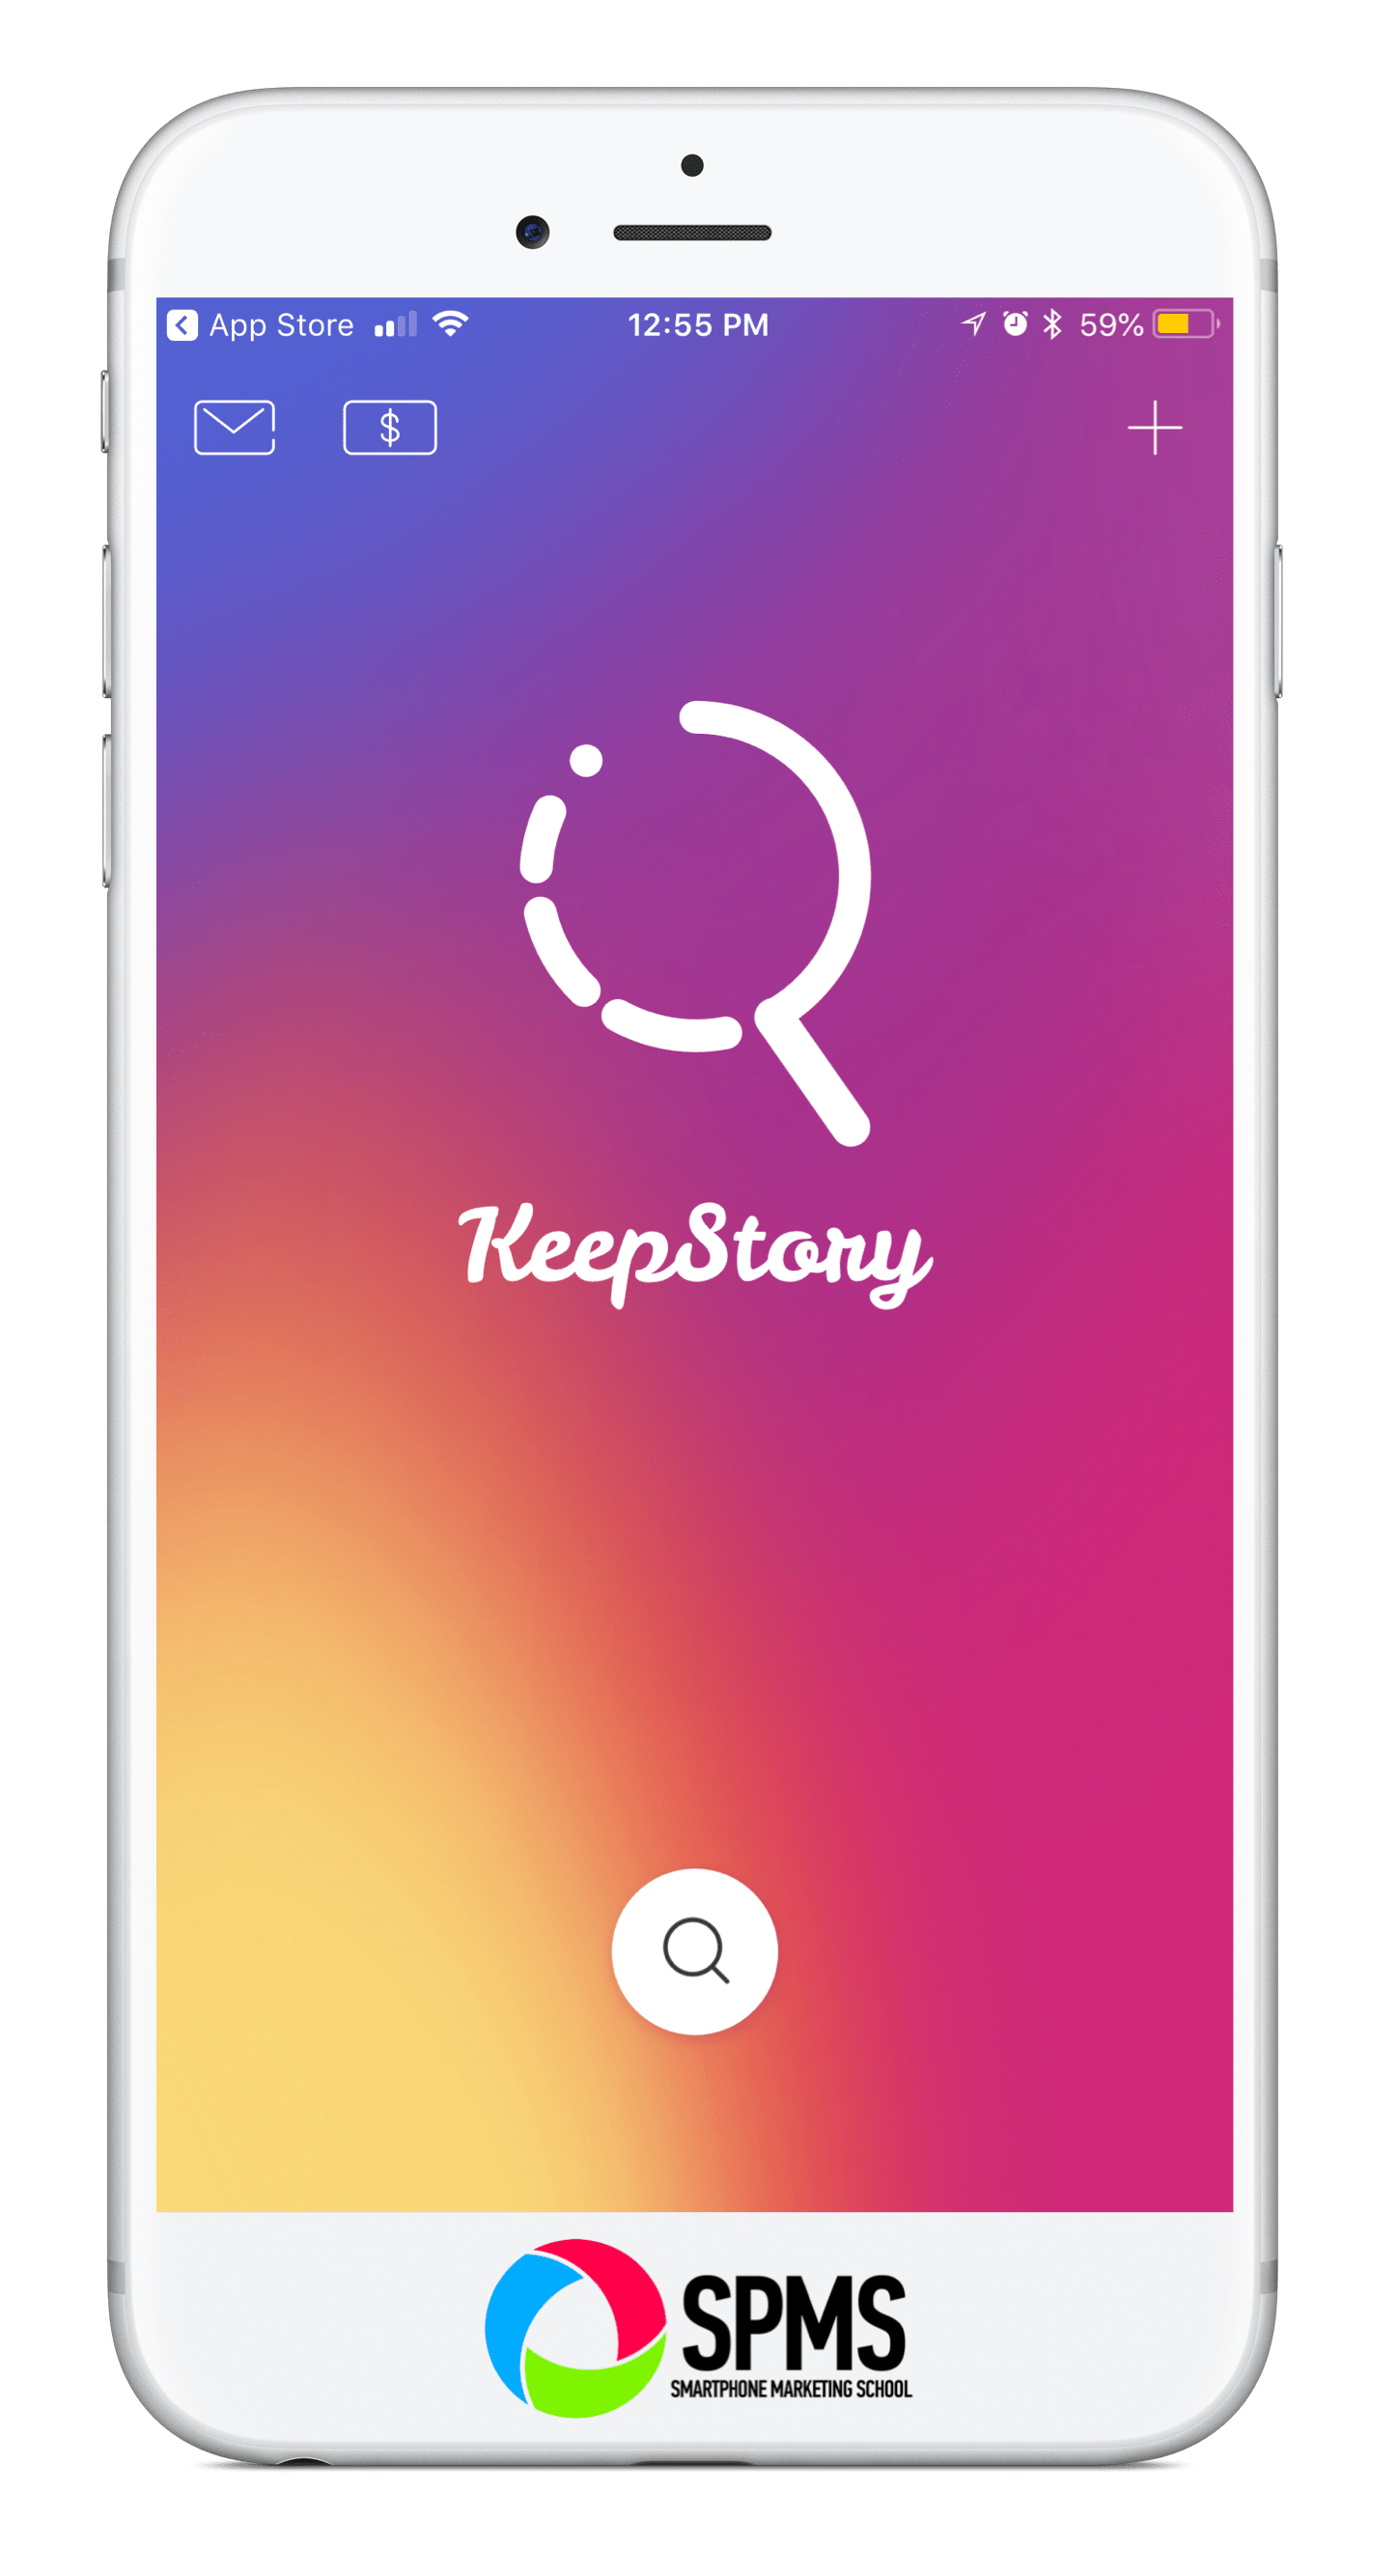 Download and Repost Instagram Stories Quickly! Instagram